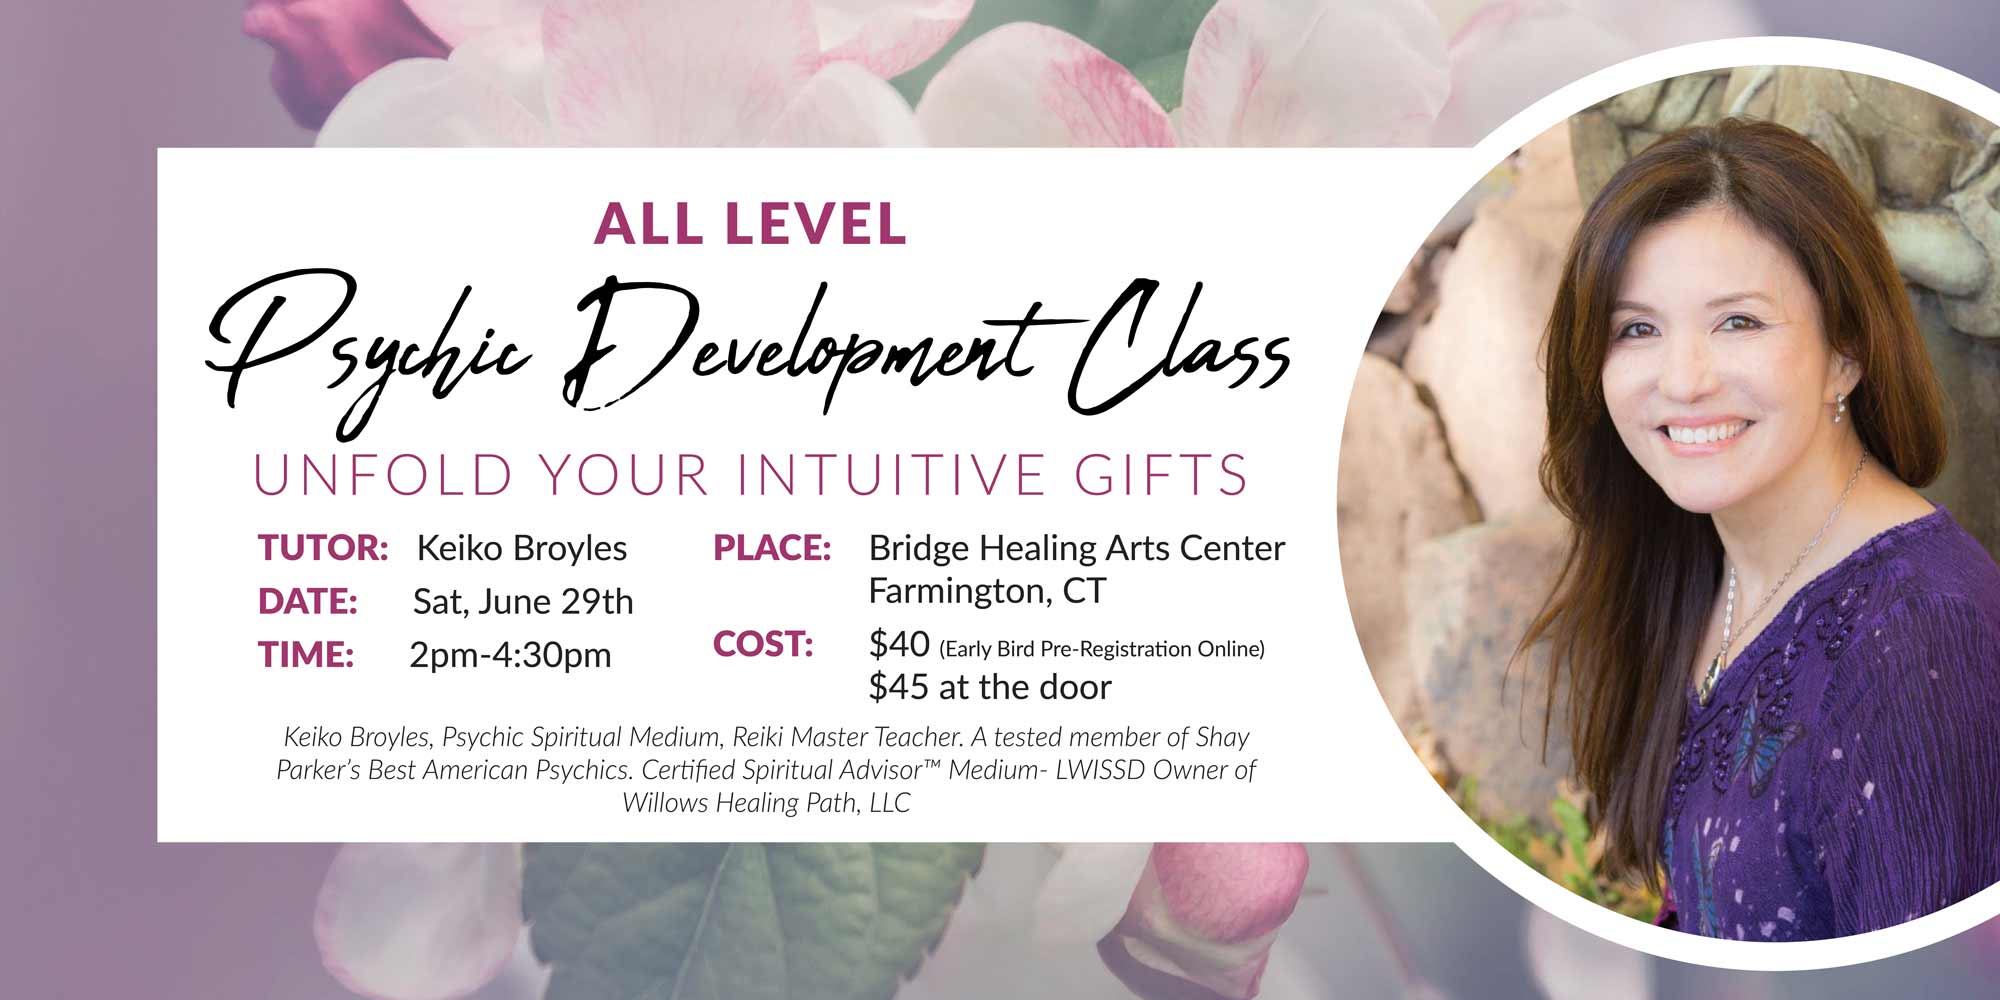 Psychic Development Class - Unfold Your Intuitive Gifts (ALL LEVEL) @ Bridge Healing Arts Center | Farmington | Connecticut | United States